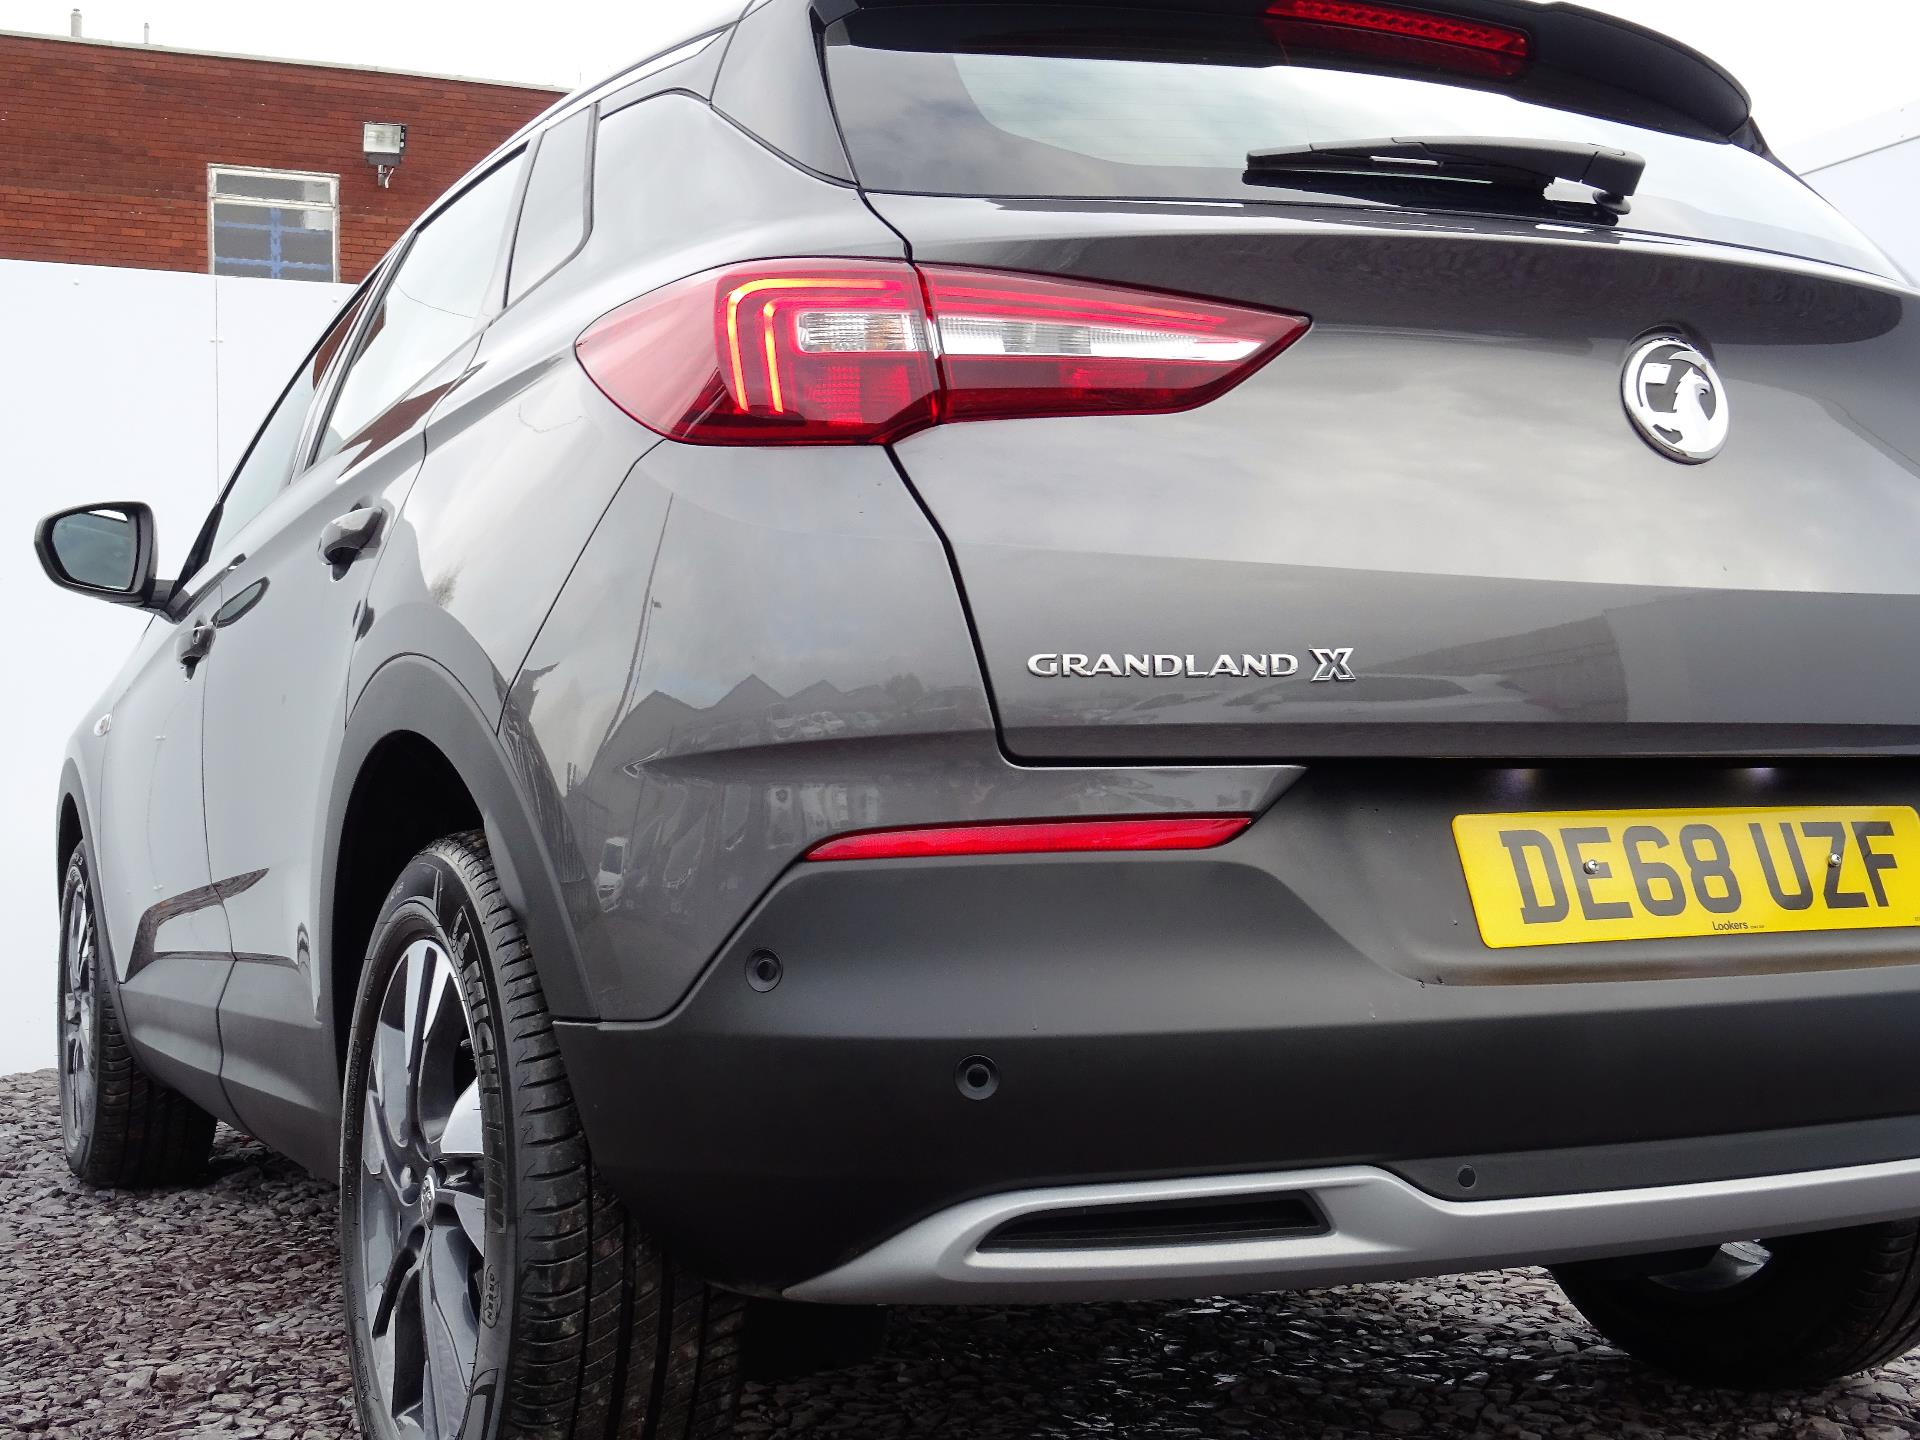 Large photo 8 for 2018/68 VAUXHALL GRANDLAND X/68 VAUXHALL GRANDLAND X 1.2T SPORT NAV 5DR**JUST 380 MILES**IMMEDIATE DELIVERY**(VXL)